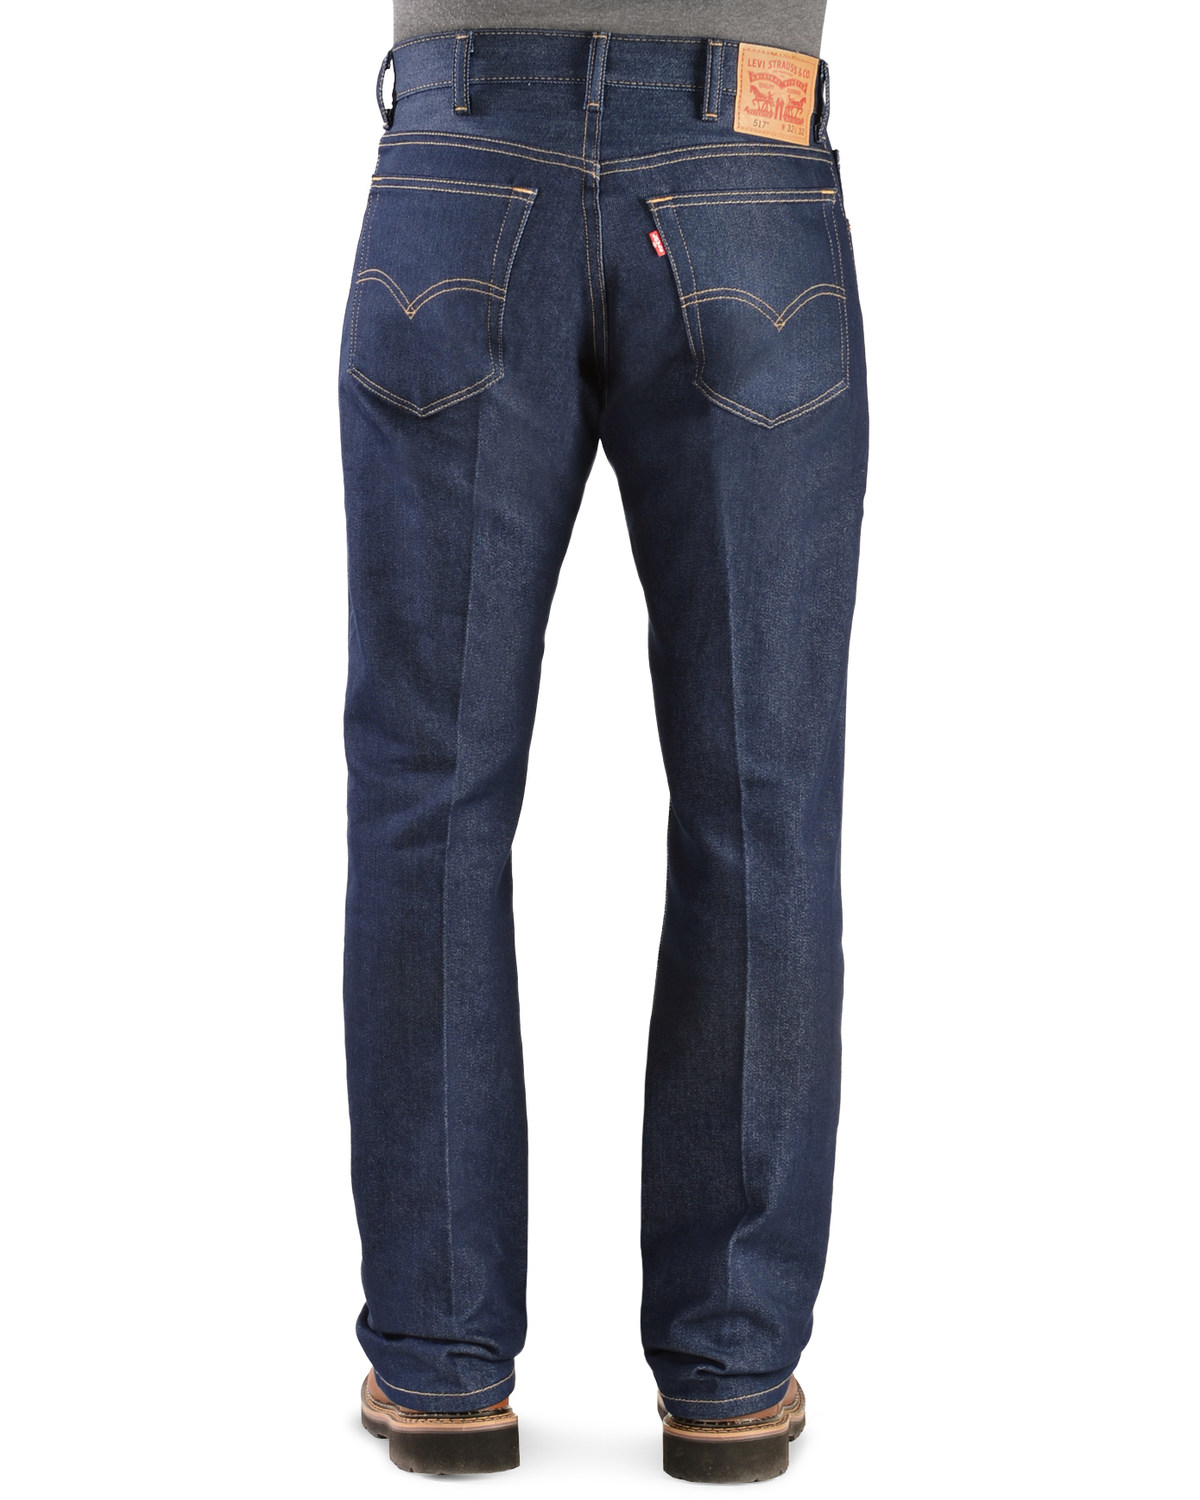 a7ec2f332c2 Zoomed Image Levi's 517 Jeans - Boot Cut Stretch, Indigo, ...